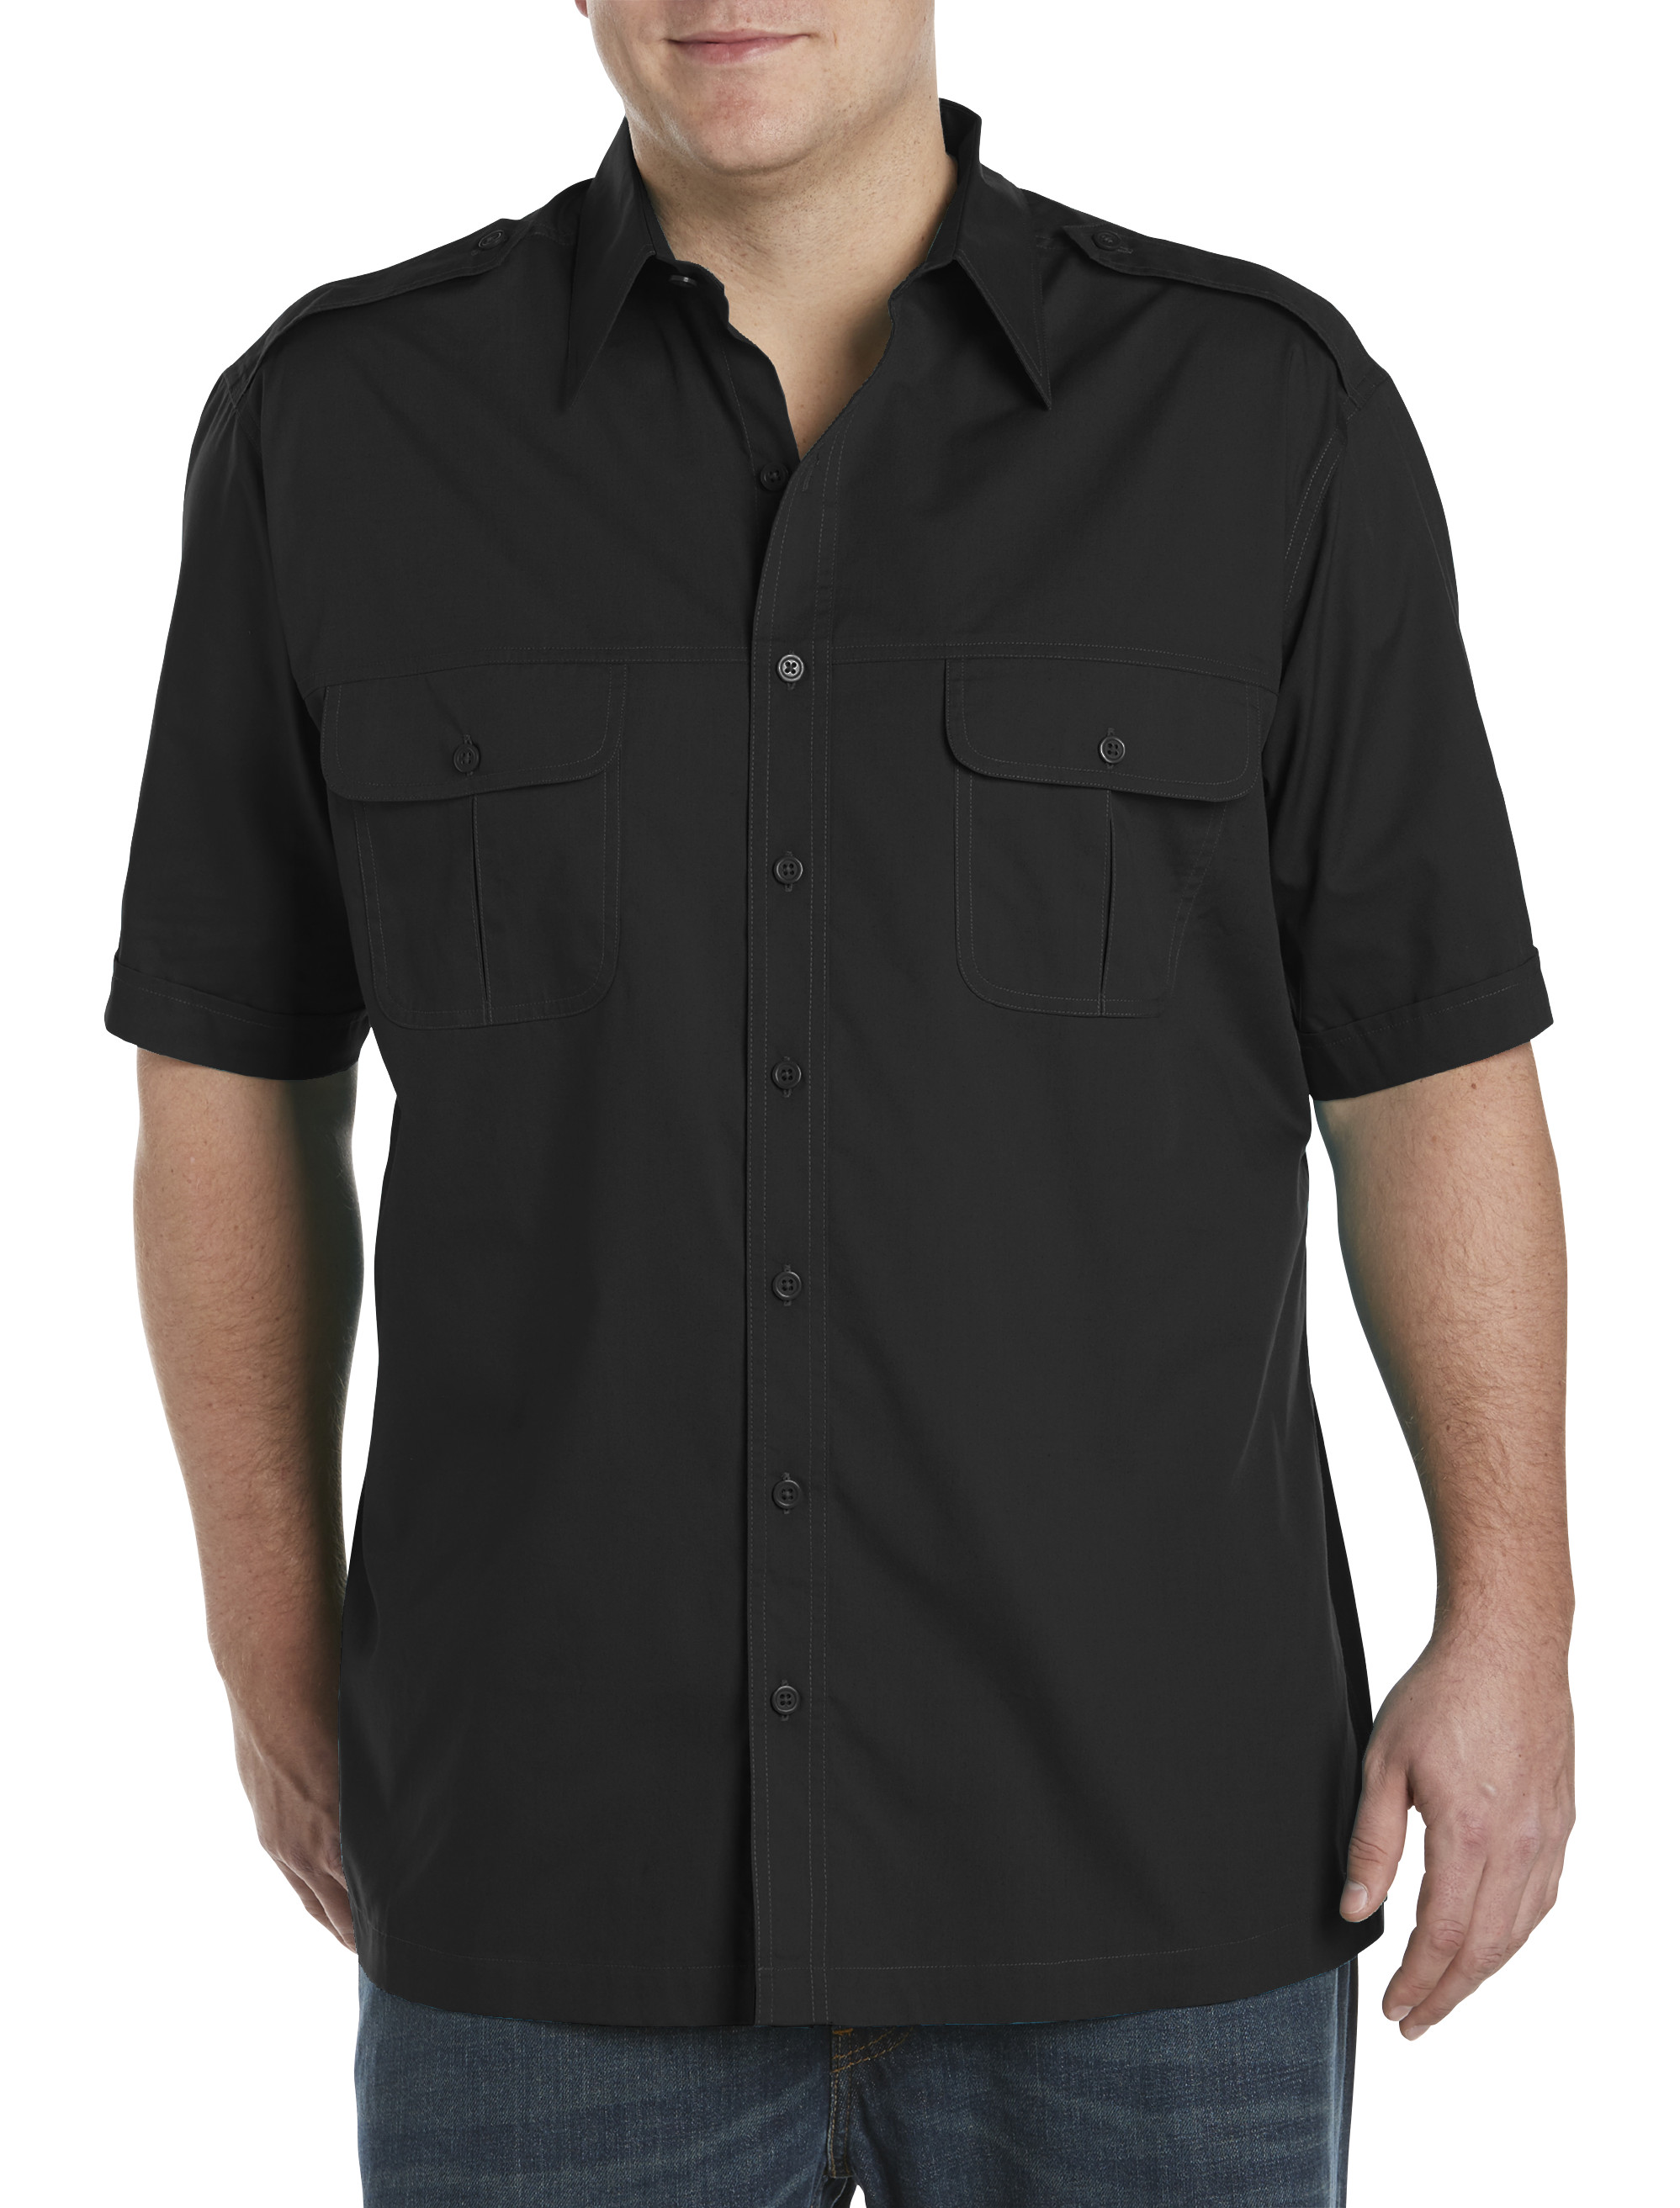 Find big and tall shirts for any occasion. Trying to find shirts on the rack that both fit well and look good can be tough for bigger men, but men's big and tall shirts are available in sizes ranging from LT to XLT all the way up to 9X.